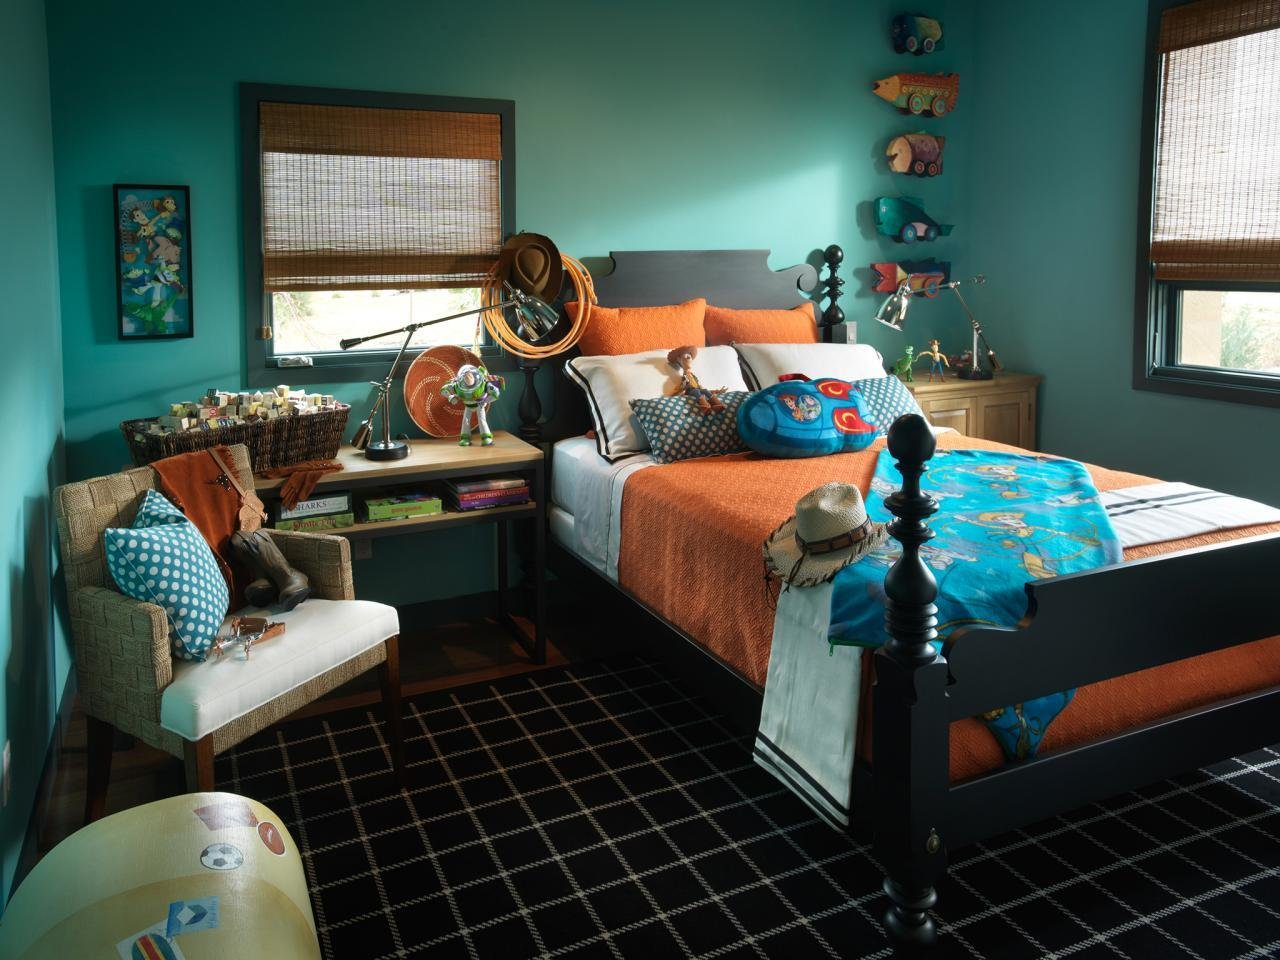 Best Kids Bedroom From Hgtv Dream Home 2010 Pictures And With Pictures